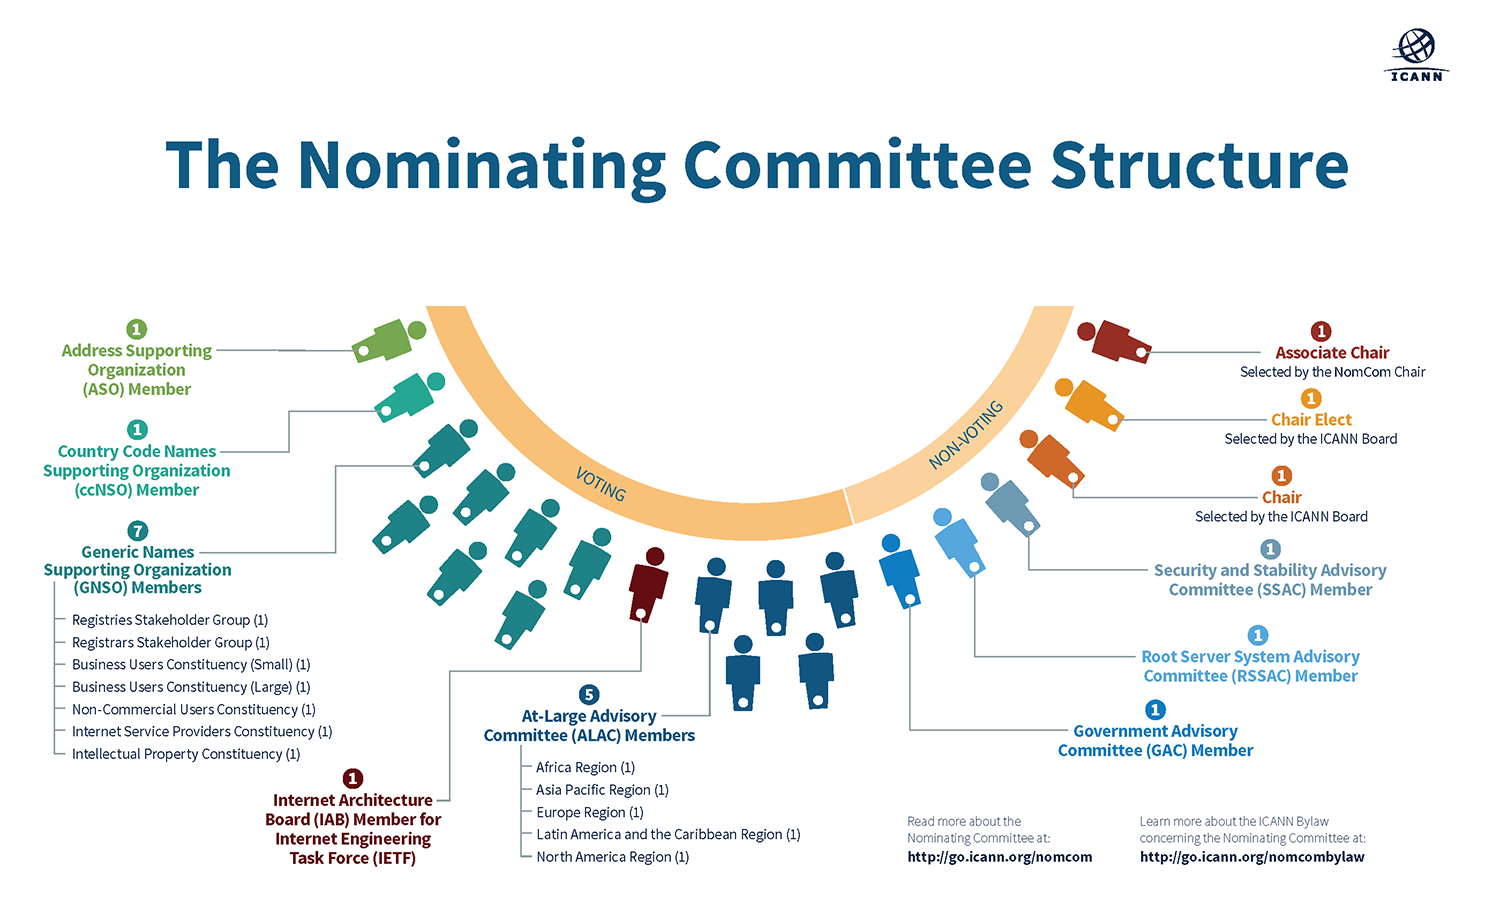 The Nominating Committee Structure